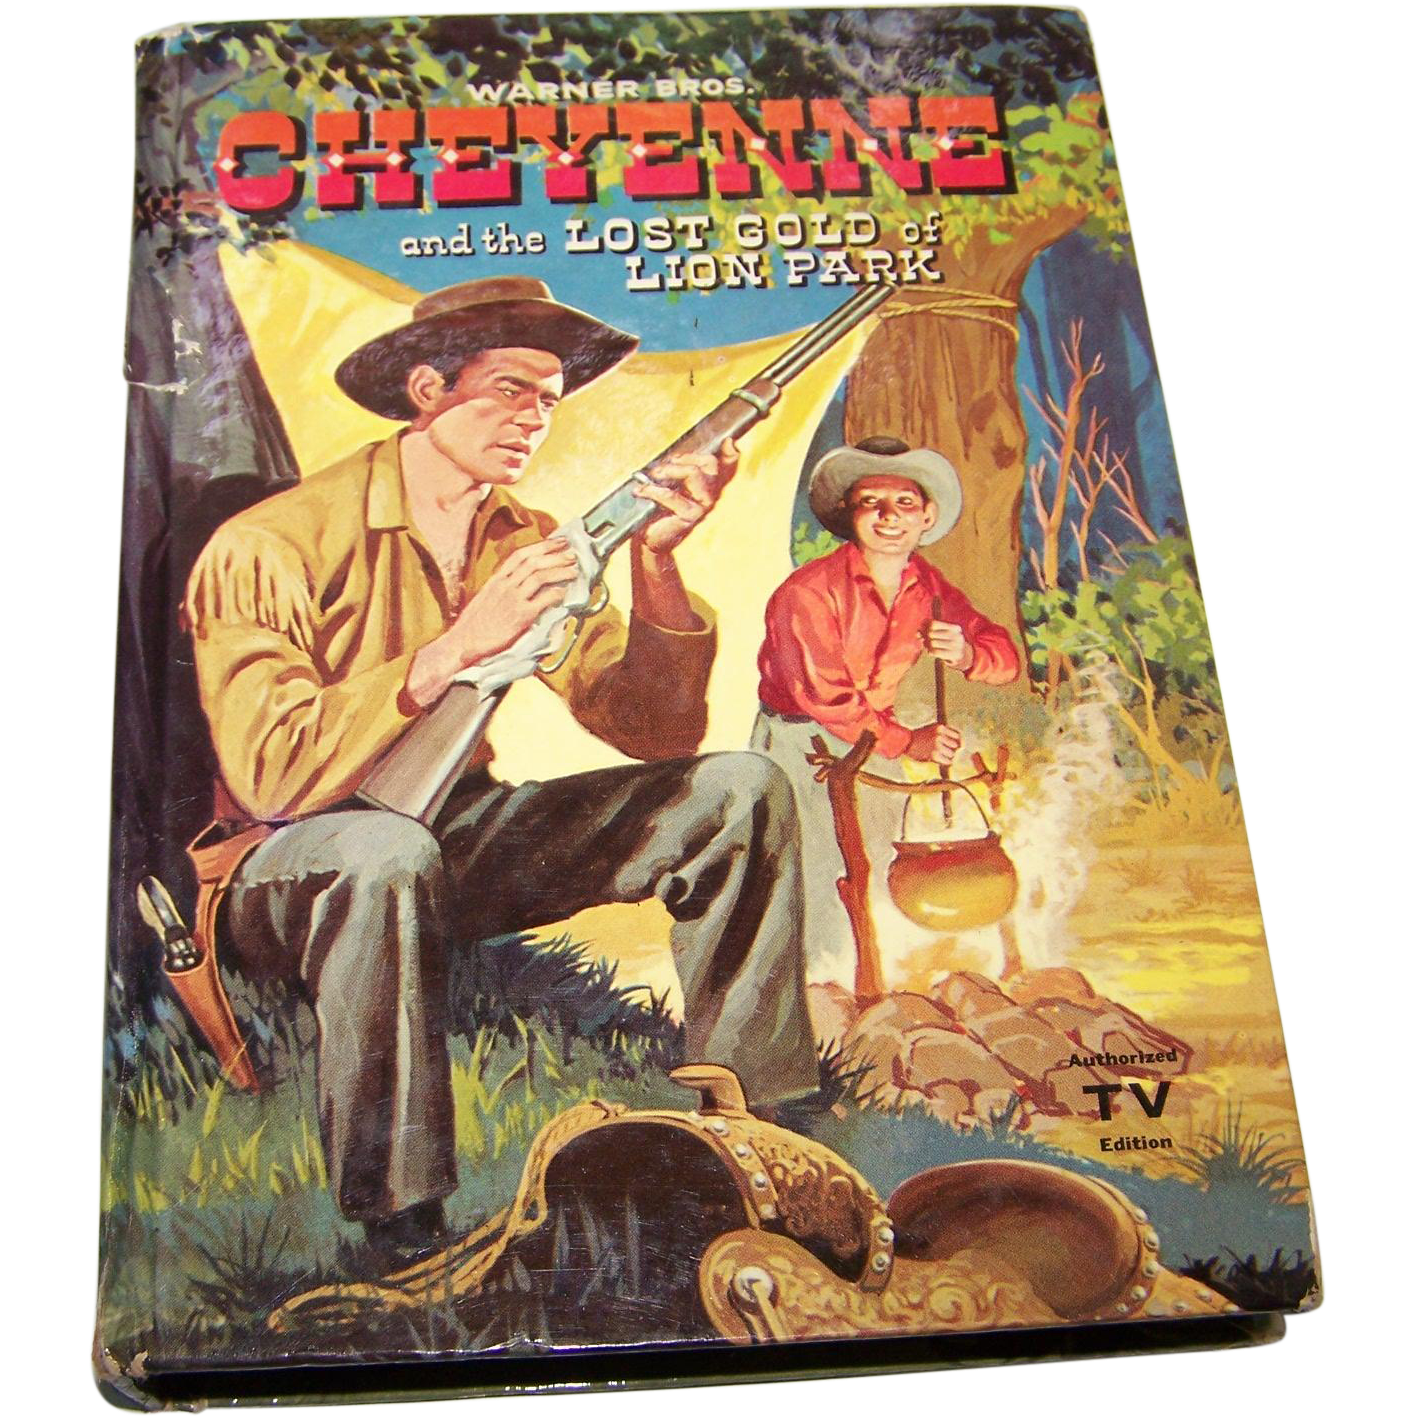 "Vintage Children's Hard Cover Book "" Cheyenne "" and the Lost Gold of Lion Park Authorized TV Edition"